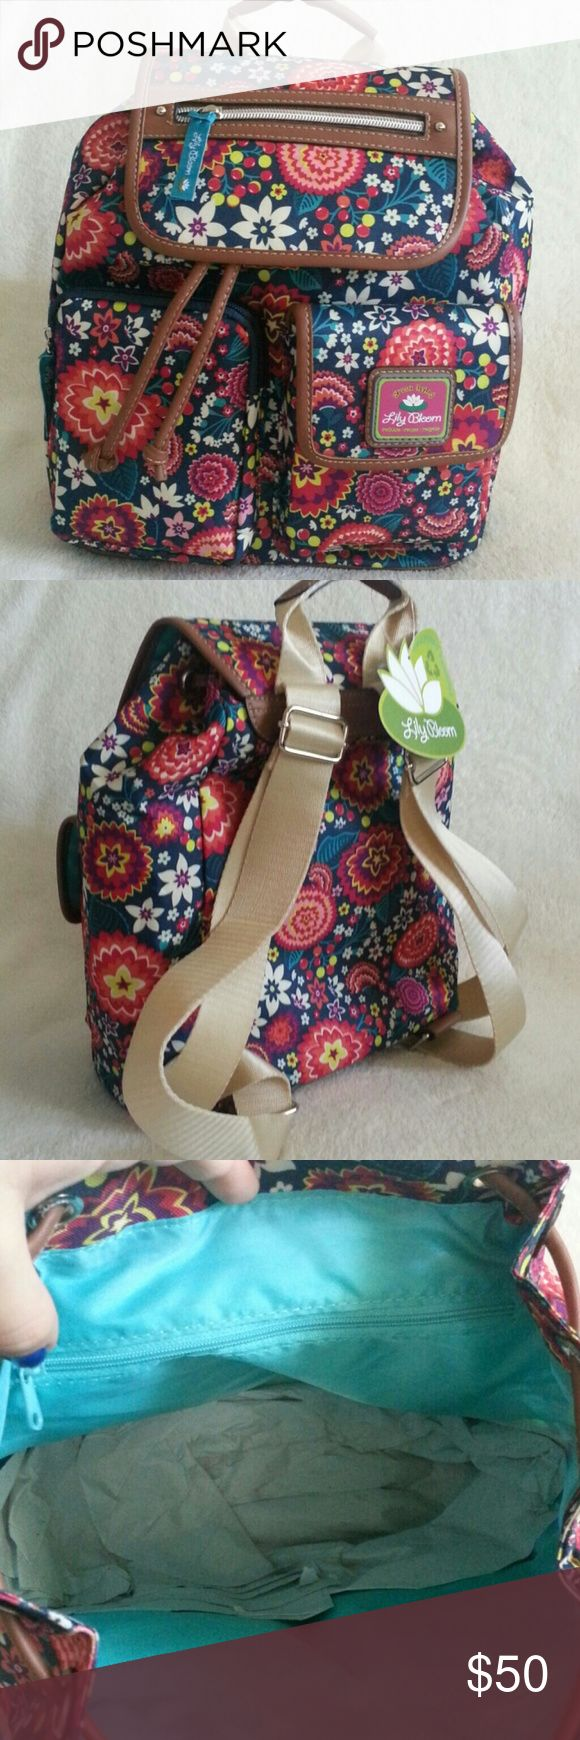 "SALE NWT Lily Bloom Riley Backpack Style color Electric Floral Measurements 10.5"" x 5.5"" x 12"" Straps can adjustable PRICE IS FIRM Lily Bloom Bags Backpacks"